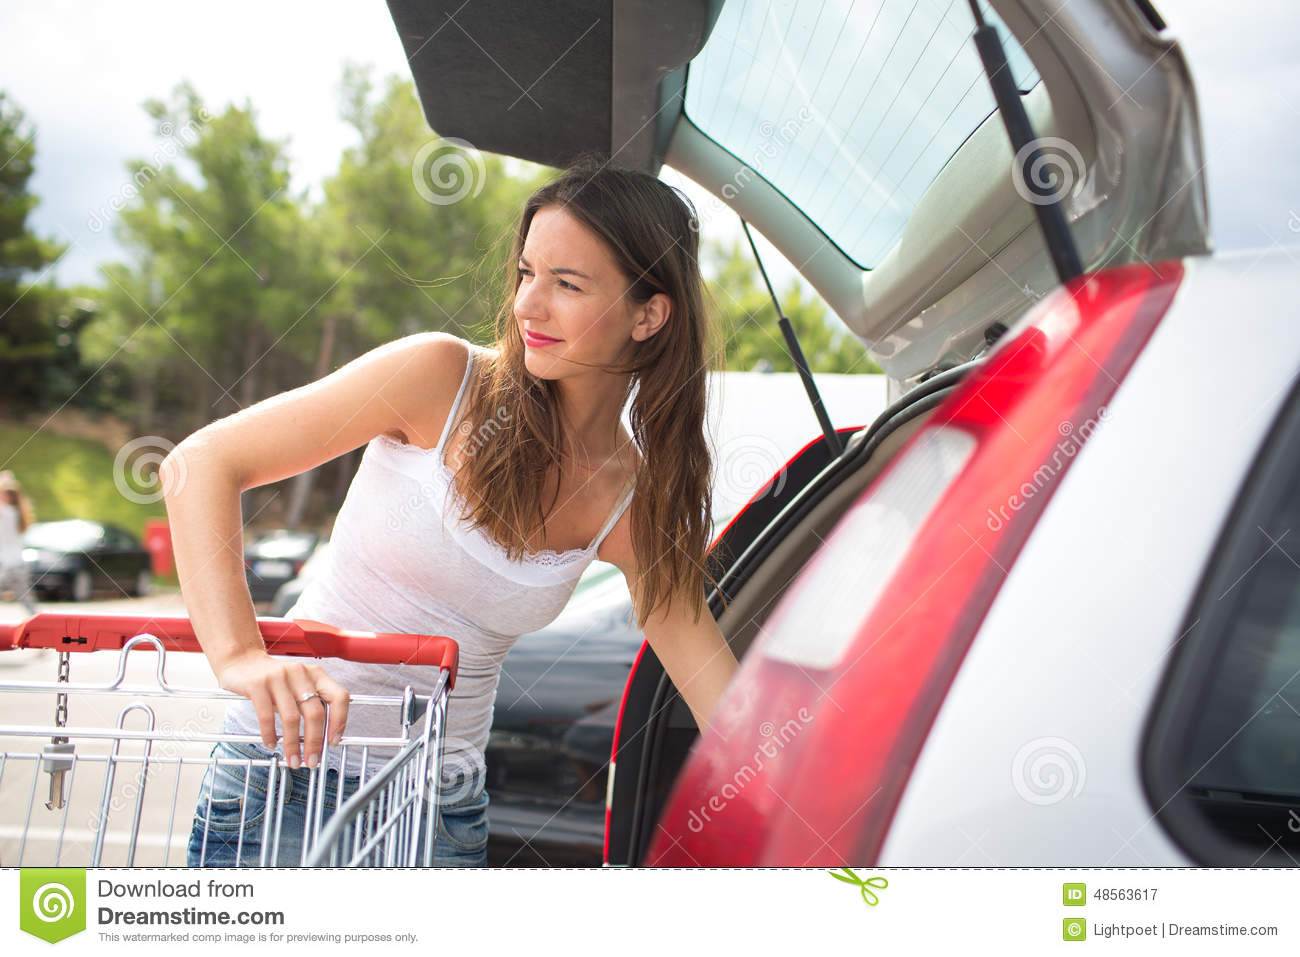 Shopping nude for car picture 703